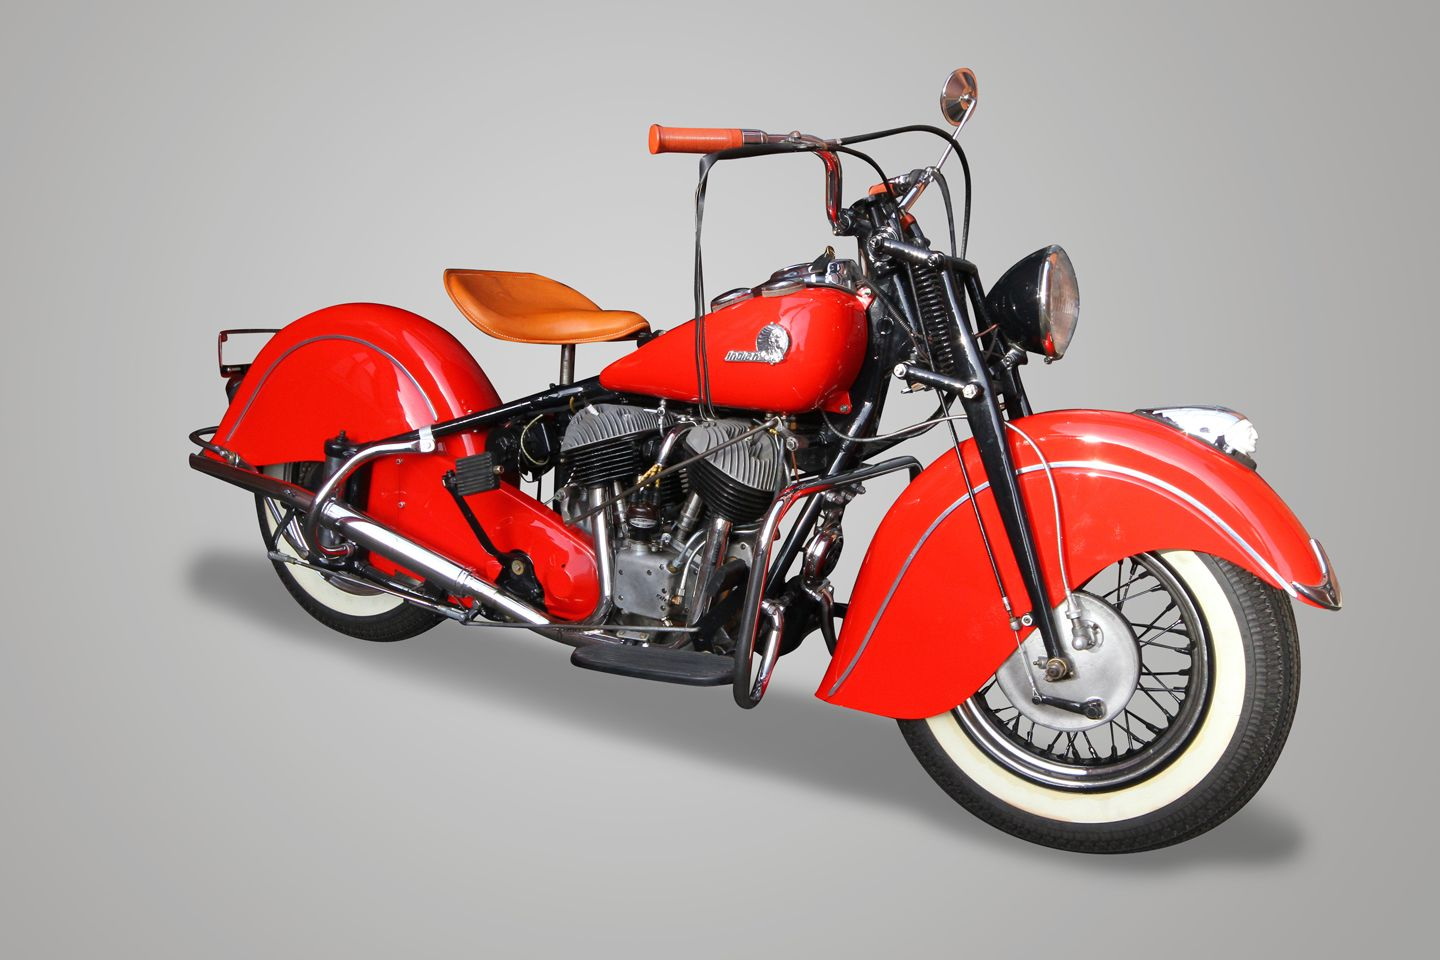 1948 Indian Chief 80 Motorcycle For Sale Indian Chief Indian Motorcycle Riding Motorcycle